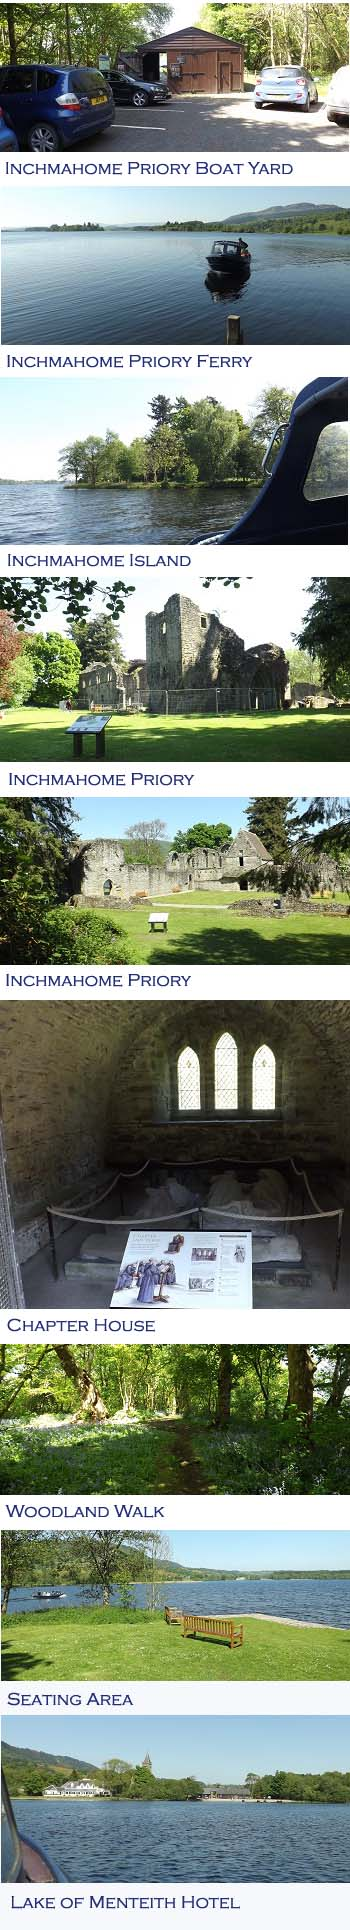 Inchmahome Priory Photos